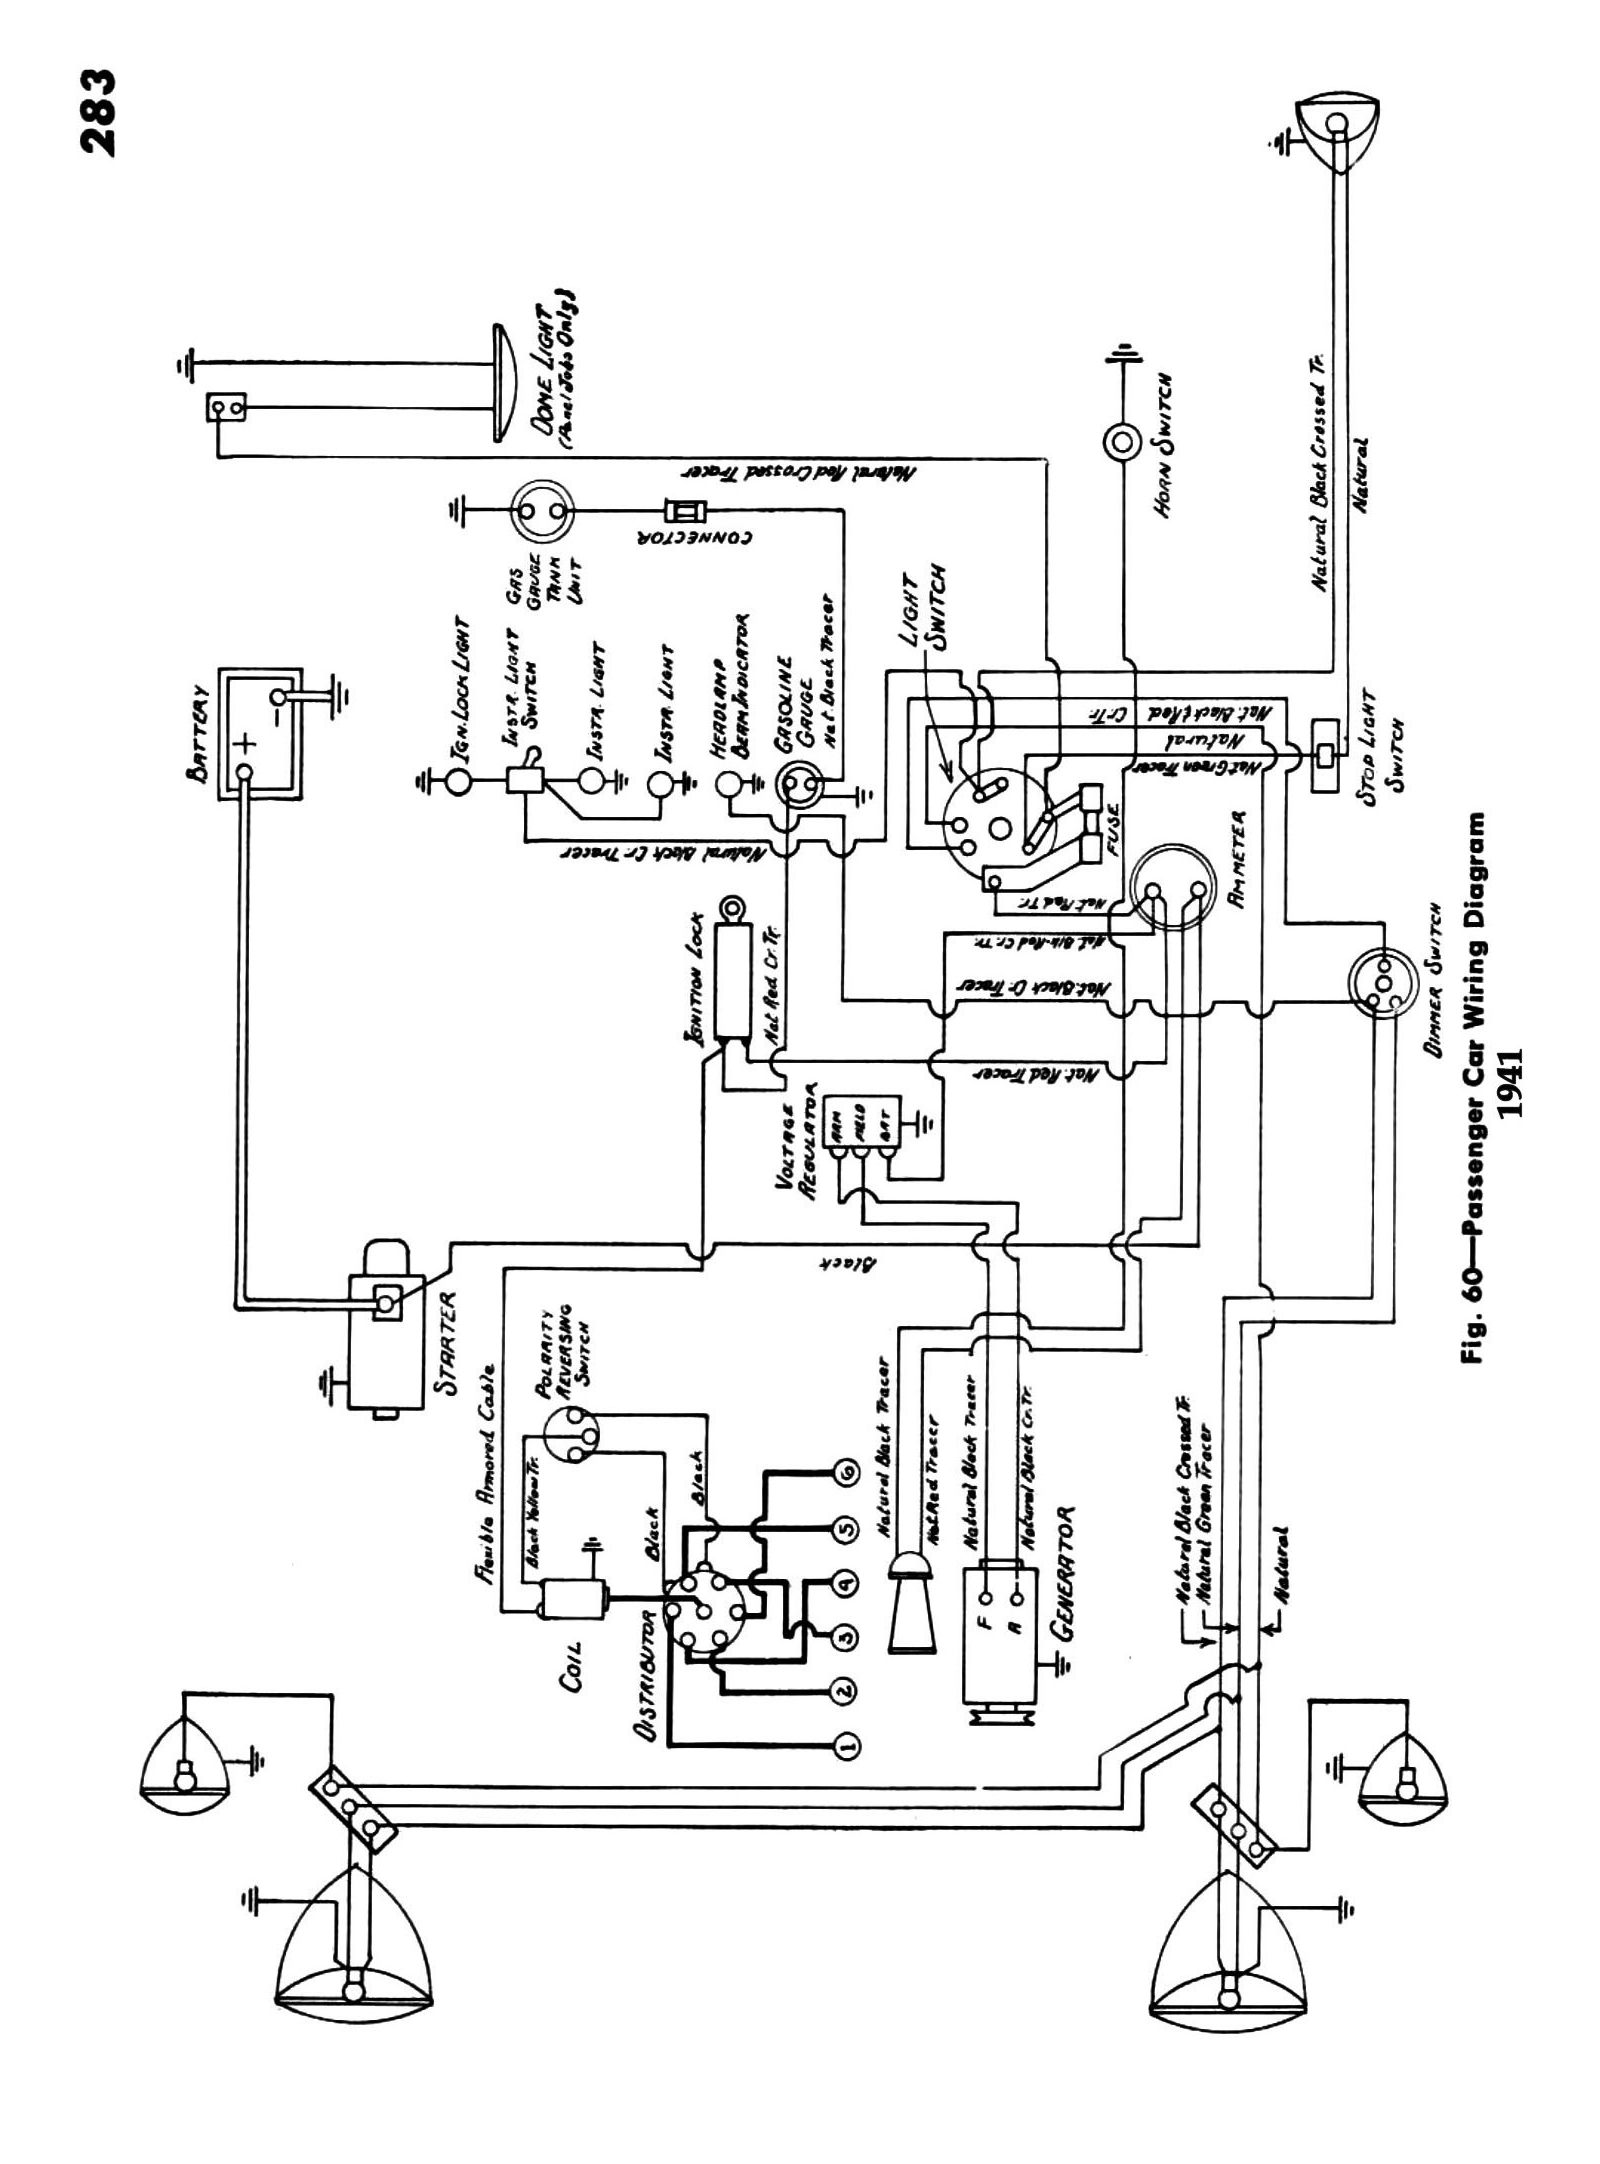 41csm283 chevy wiring diagrams chevy truck wiring diagram at et-consult.org